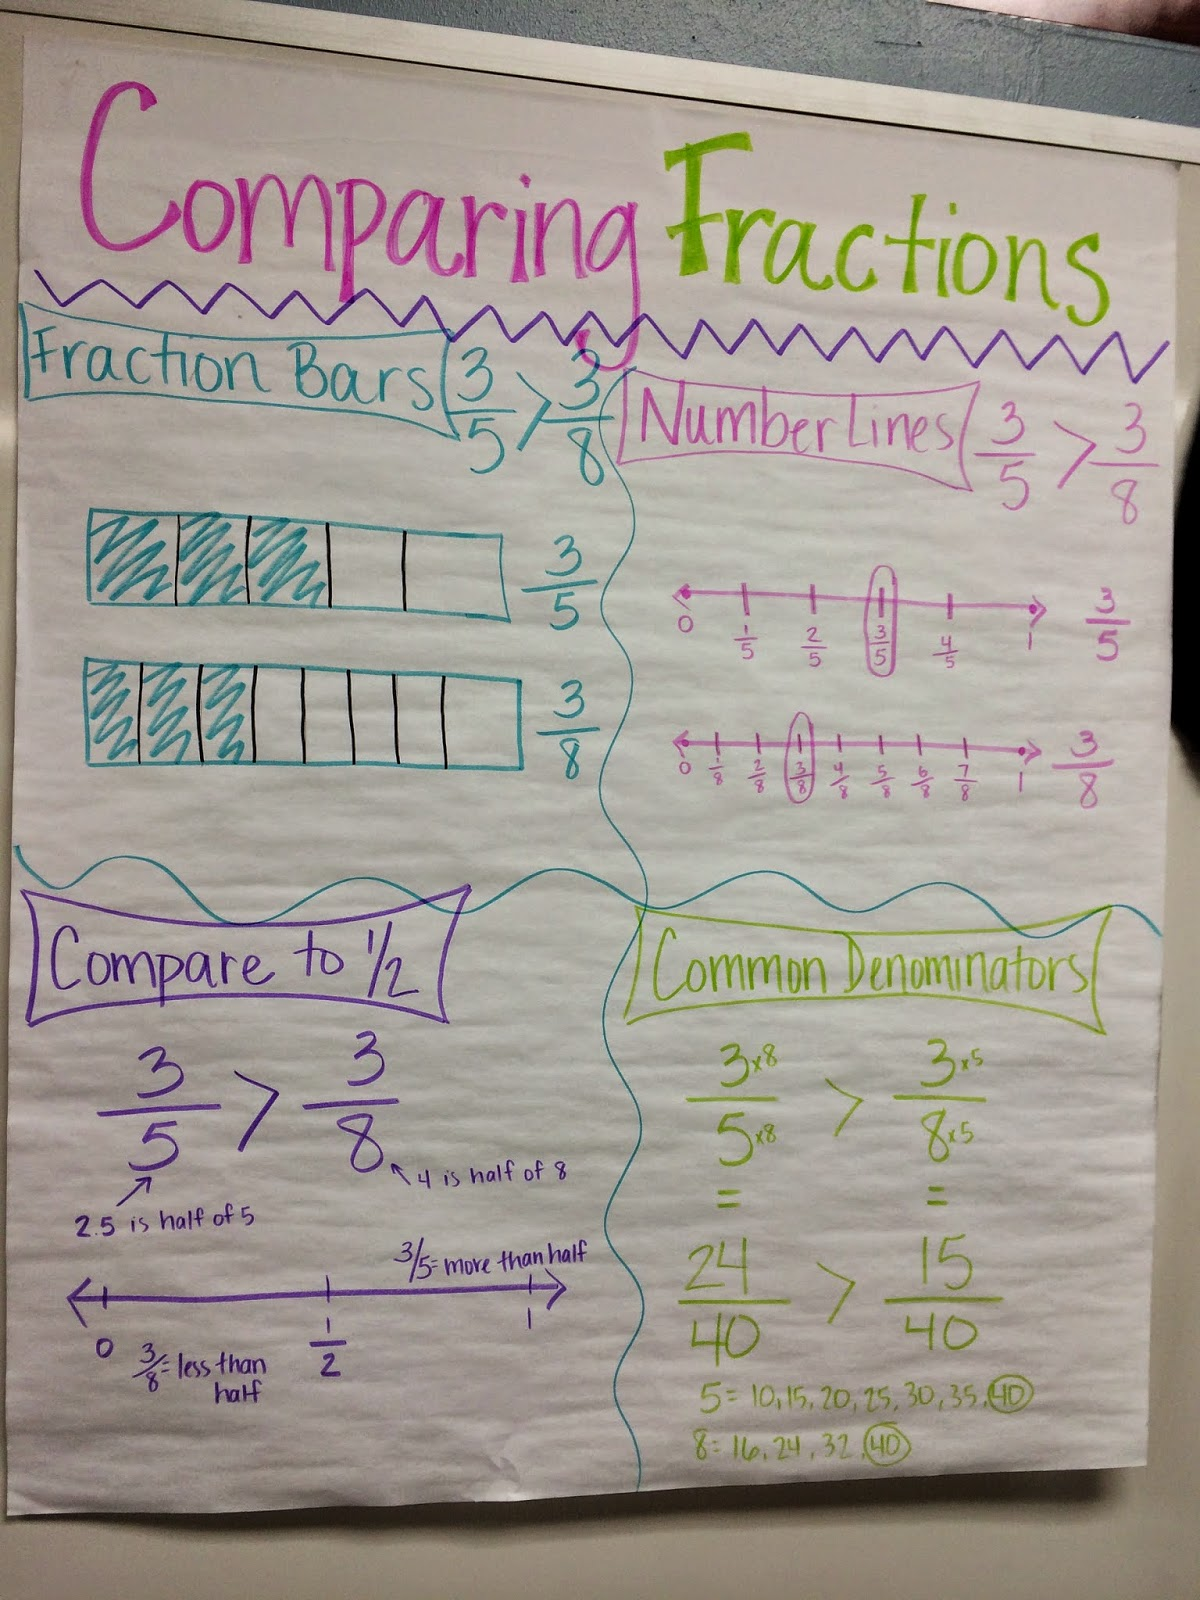 Ways to compare fractions anchor chart | Math Teaching Resources ...